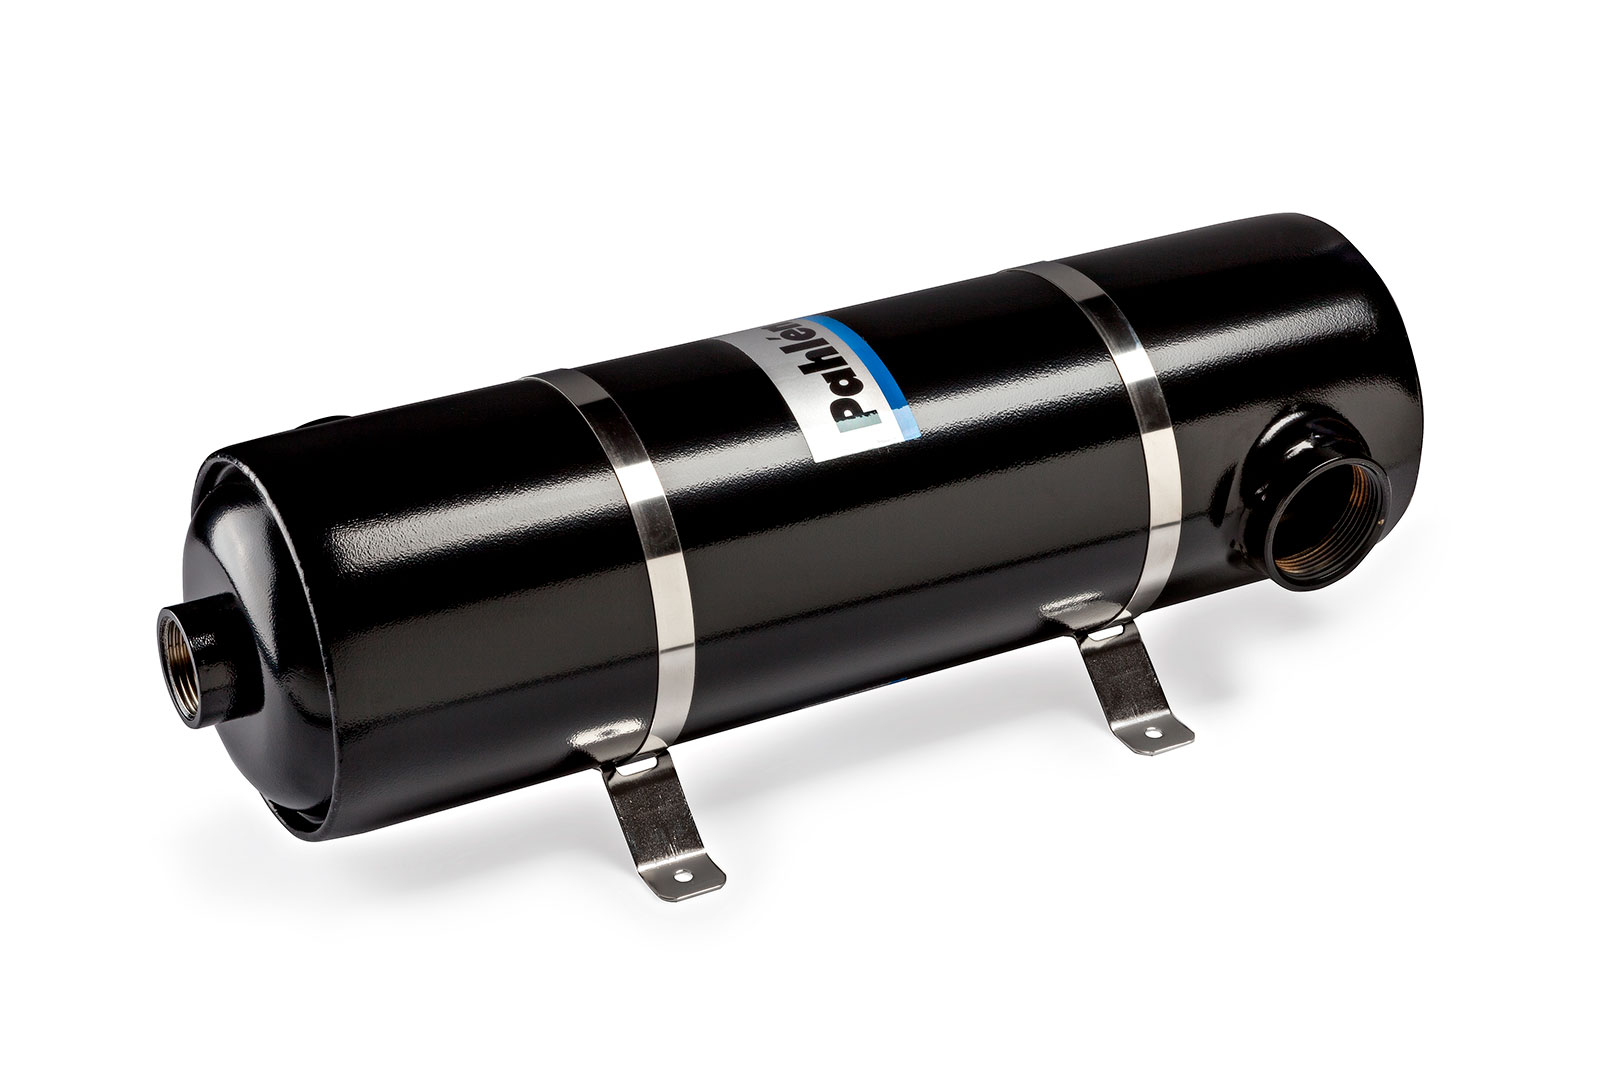 Heat exchanger Maxi-Flo - Swimming pool heaters - Pahlén